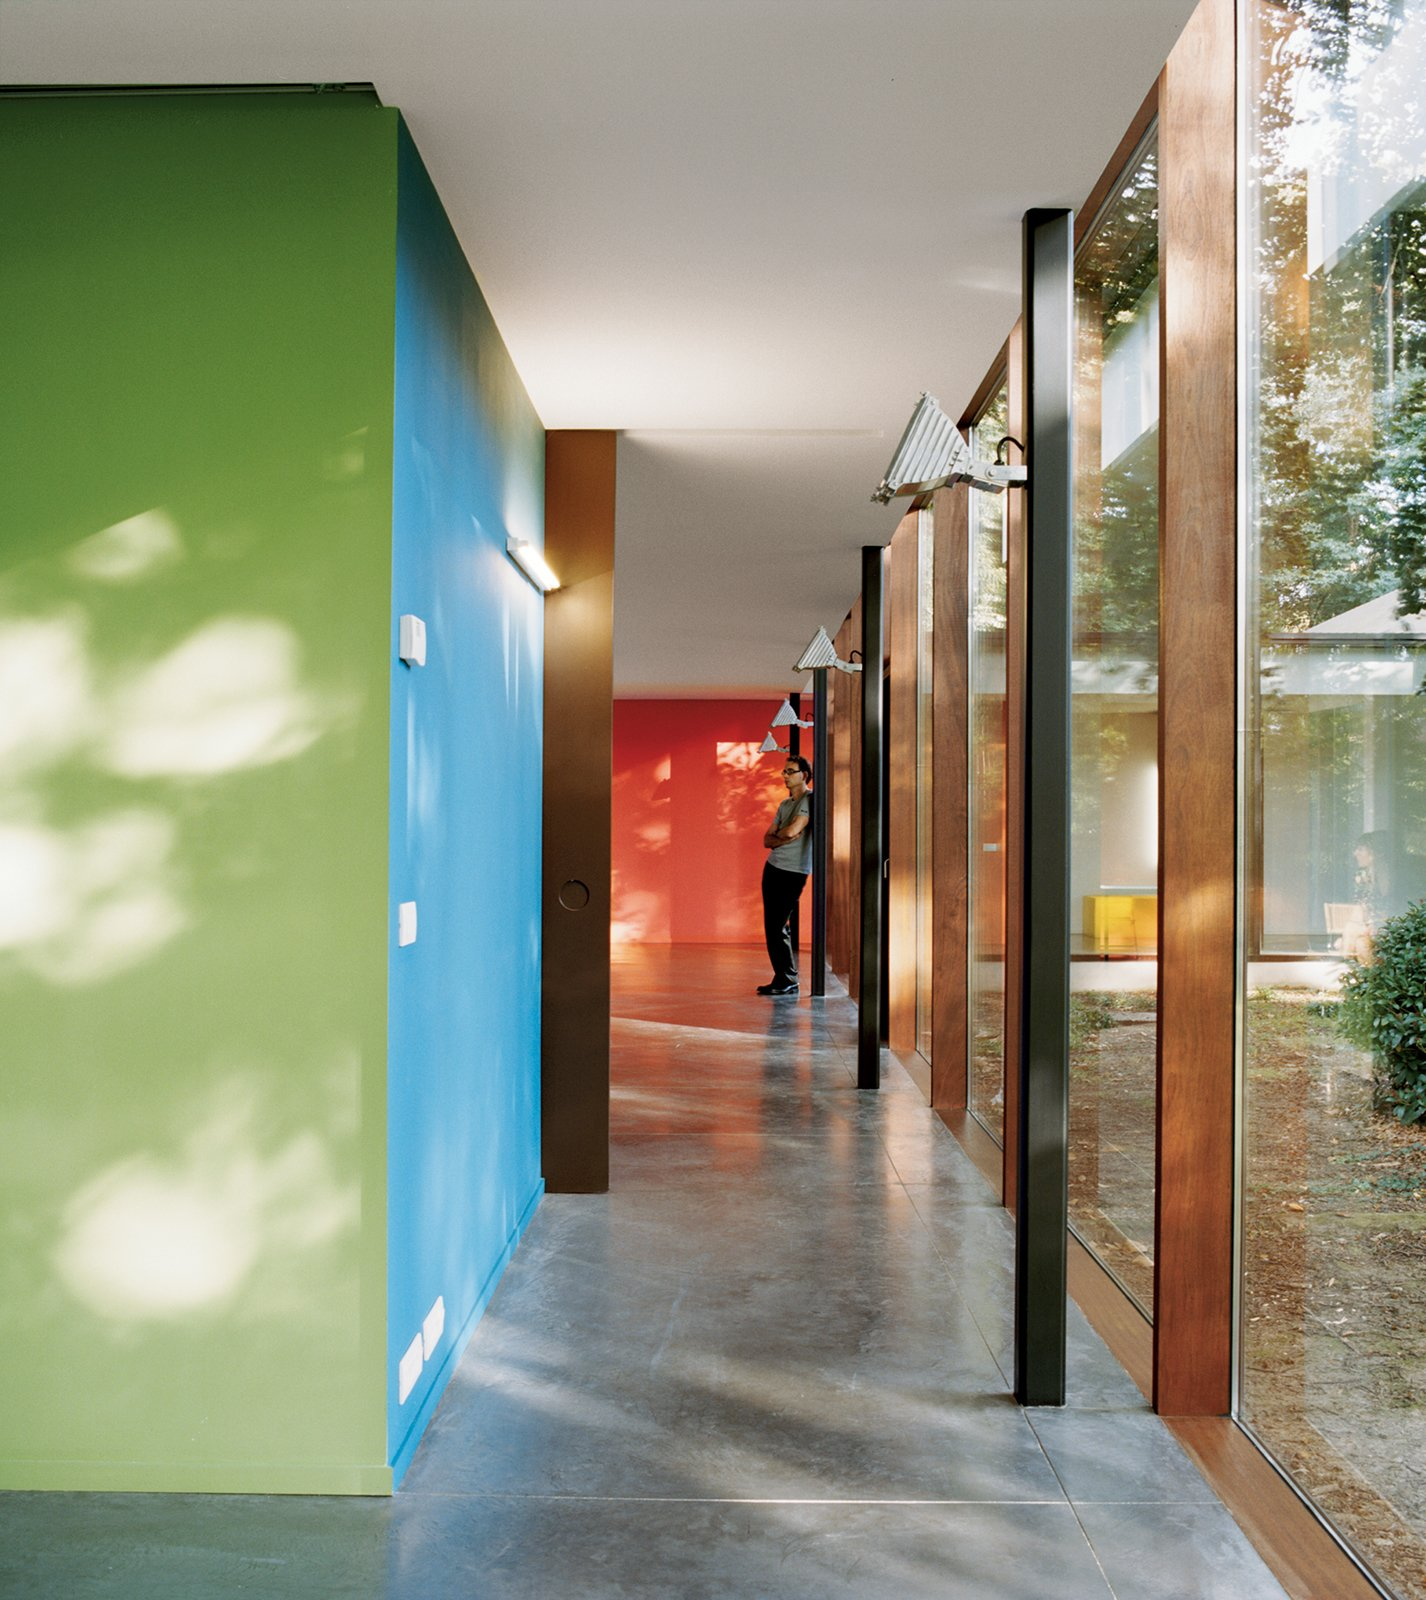 Hallway and Concrete Floor Inside the home green and blue are used for the bathroom block, dark brown for the sliding door, and orange for the wall dividing the living room from the kitchen. The floor is dark gray industrial poured concrete.  Composition